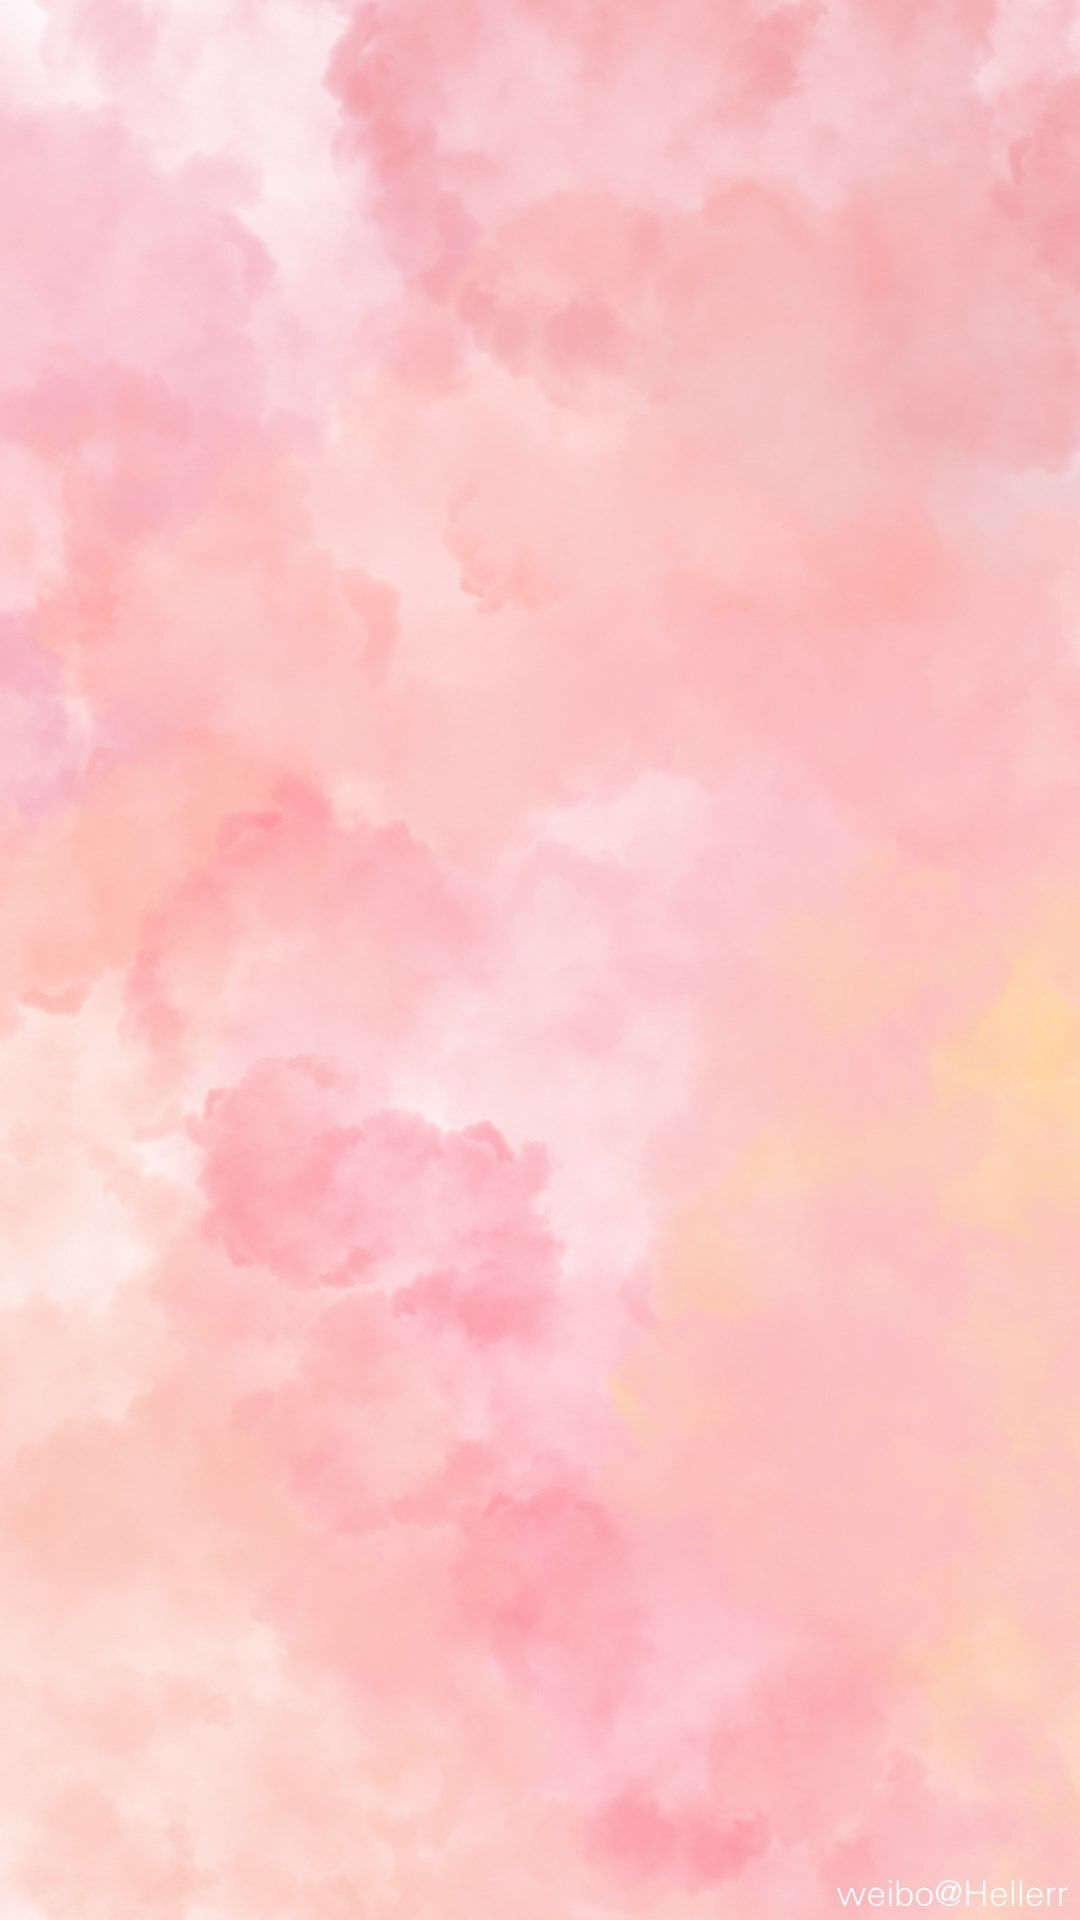 Pin By Yamila On Fluffy Pink Wallpaper Backgrounds Watercolor Wallpaper Simple Wallpapers